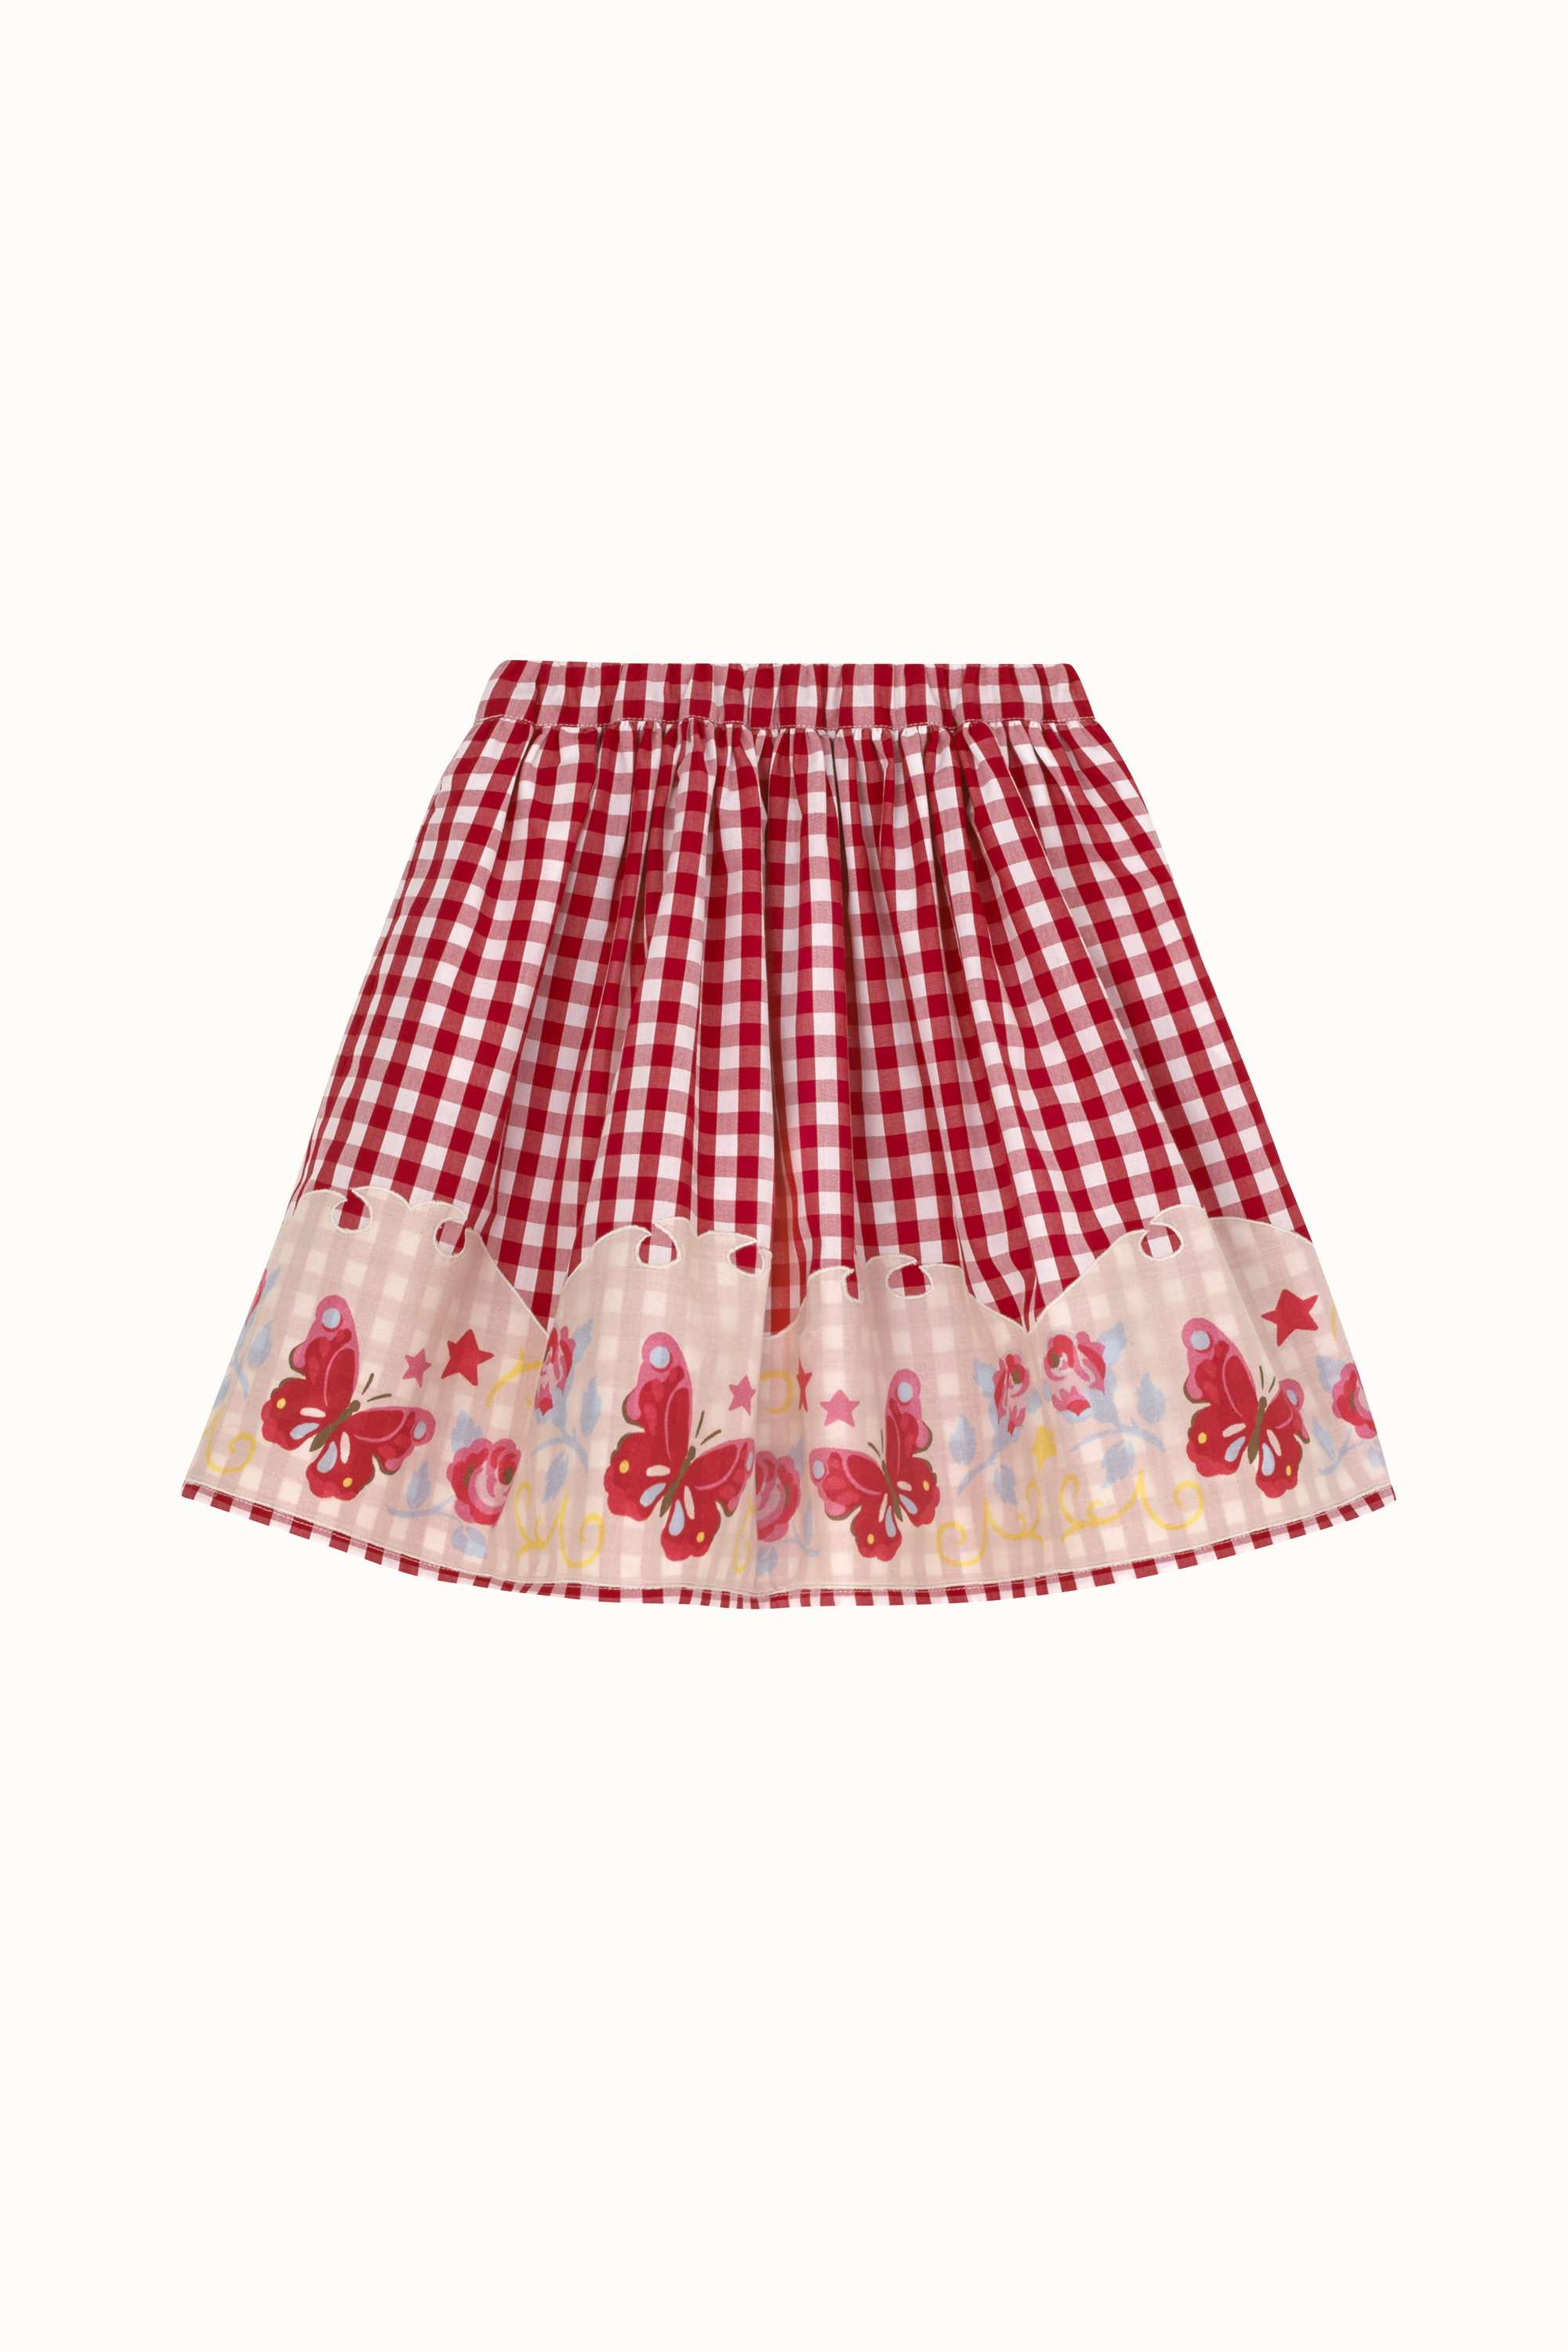 Cath Kidston Western Girl Polly Skirt in Red, 8-9 yr